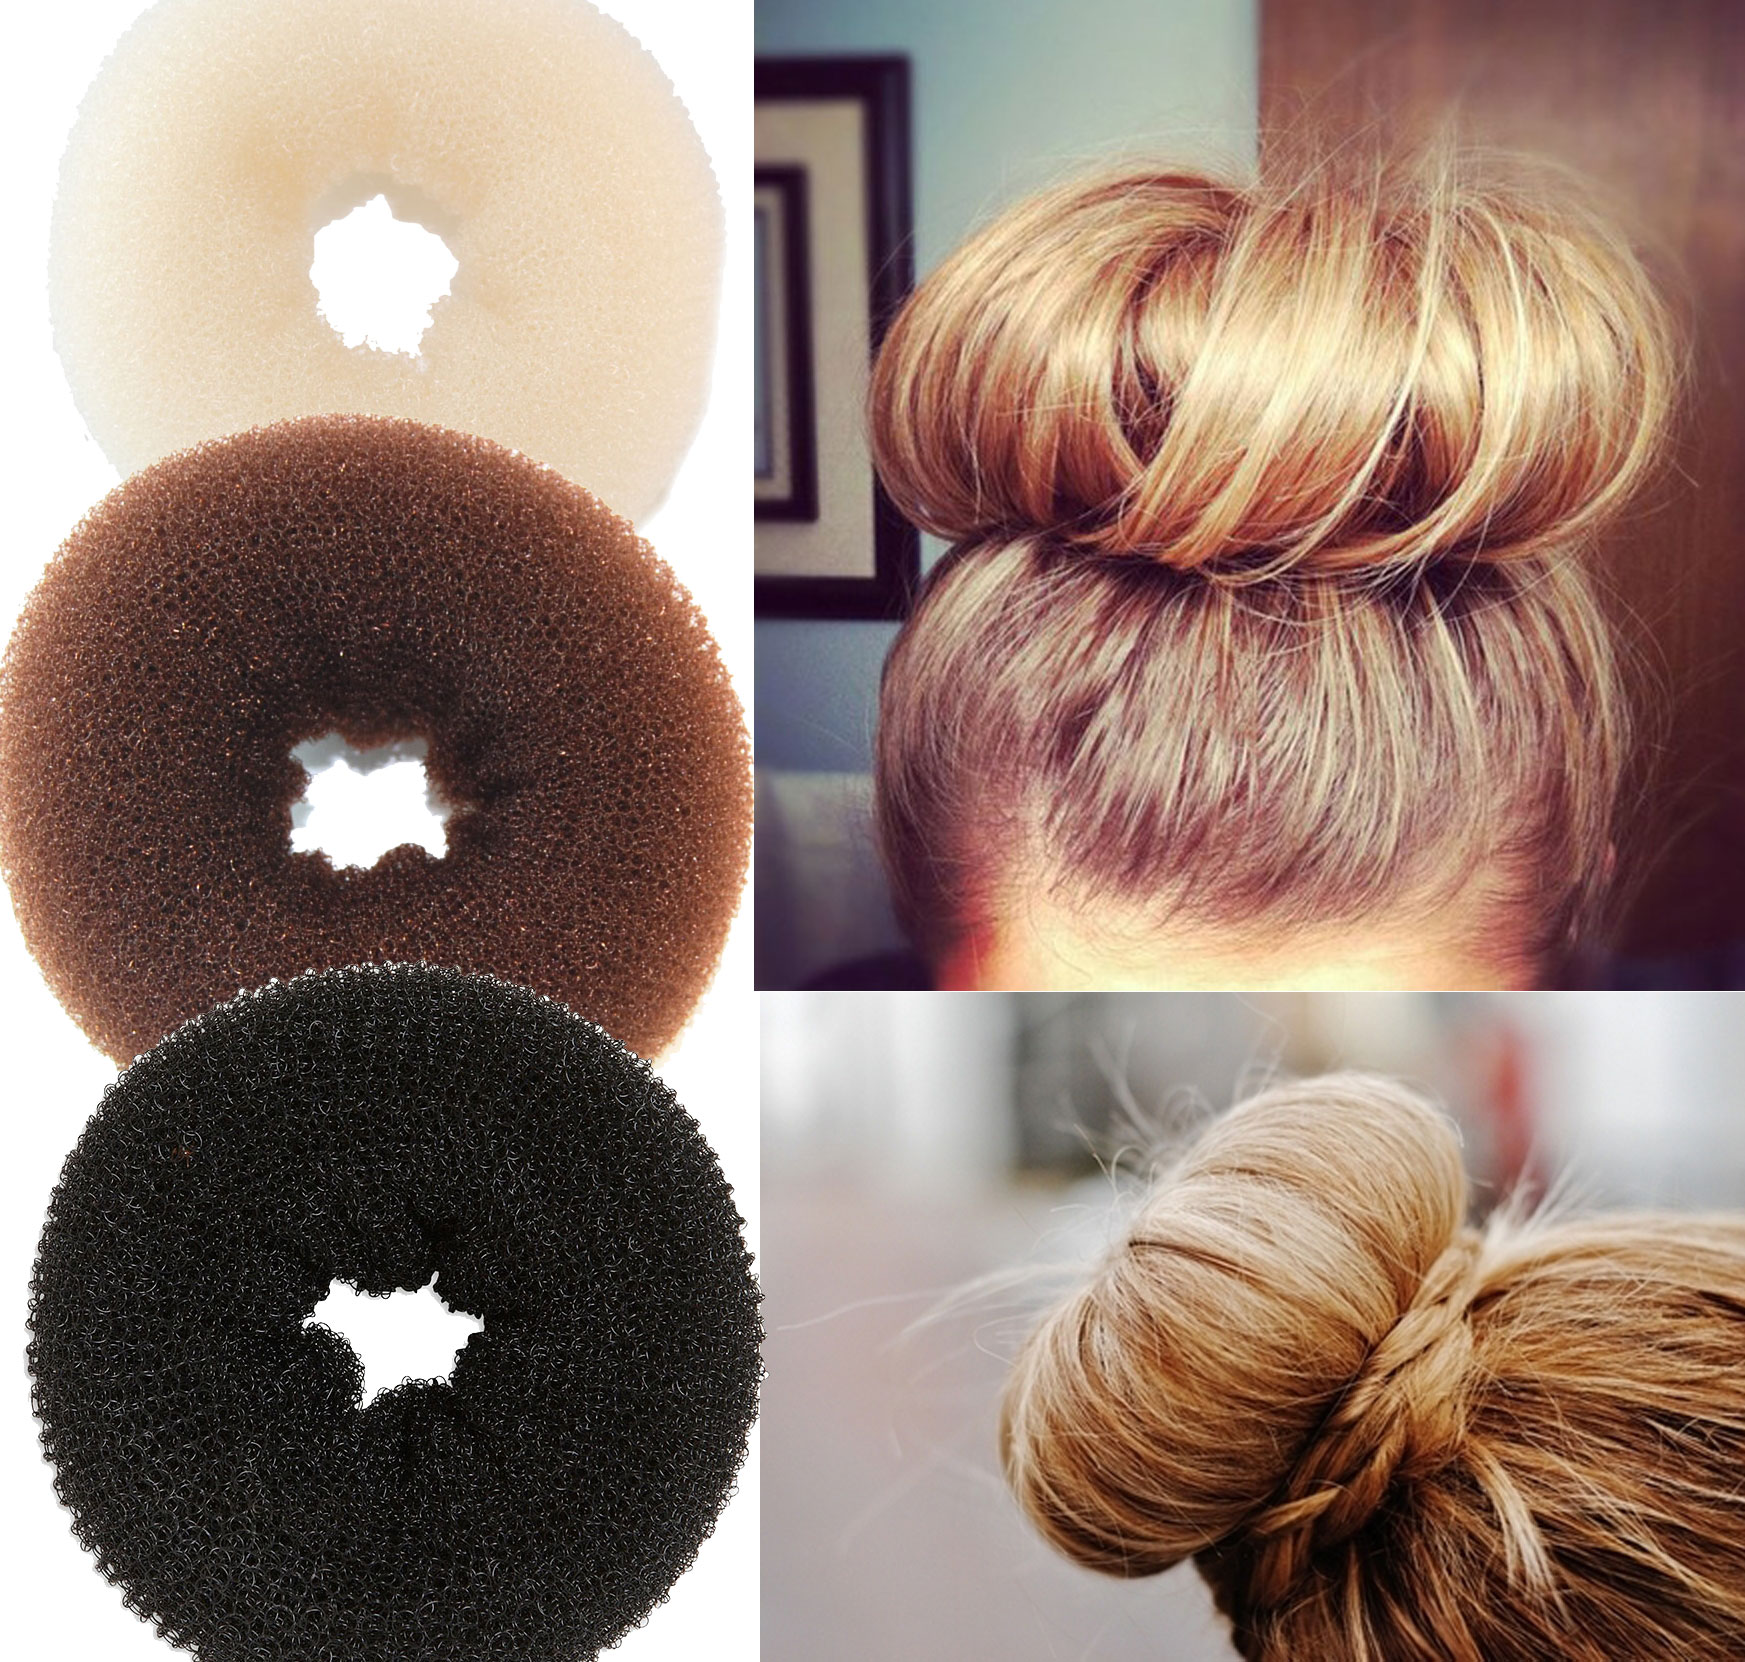 salestopp1se.gq provides hair donut items from China top selected Hair Rollers, Hair Care & Styling Tools, Hair Products suppliers at wholesale prices with worldwide delivery. You can find hair, Hair Rubber Bands hair donut free shipping, hair donut bun tool and view 25 hair donut reviews to help you choose.